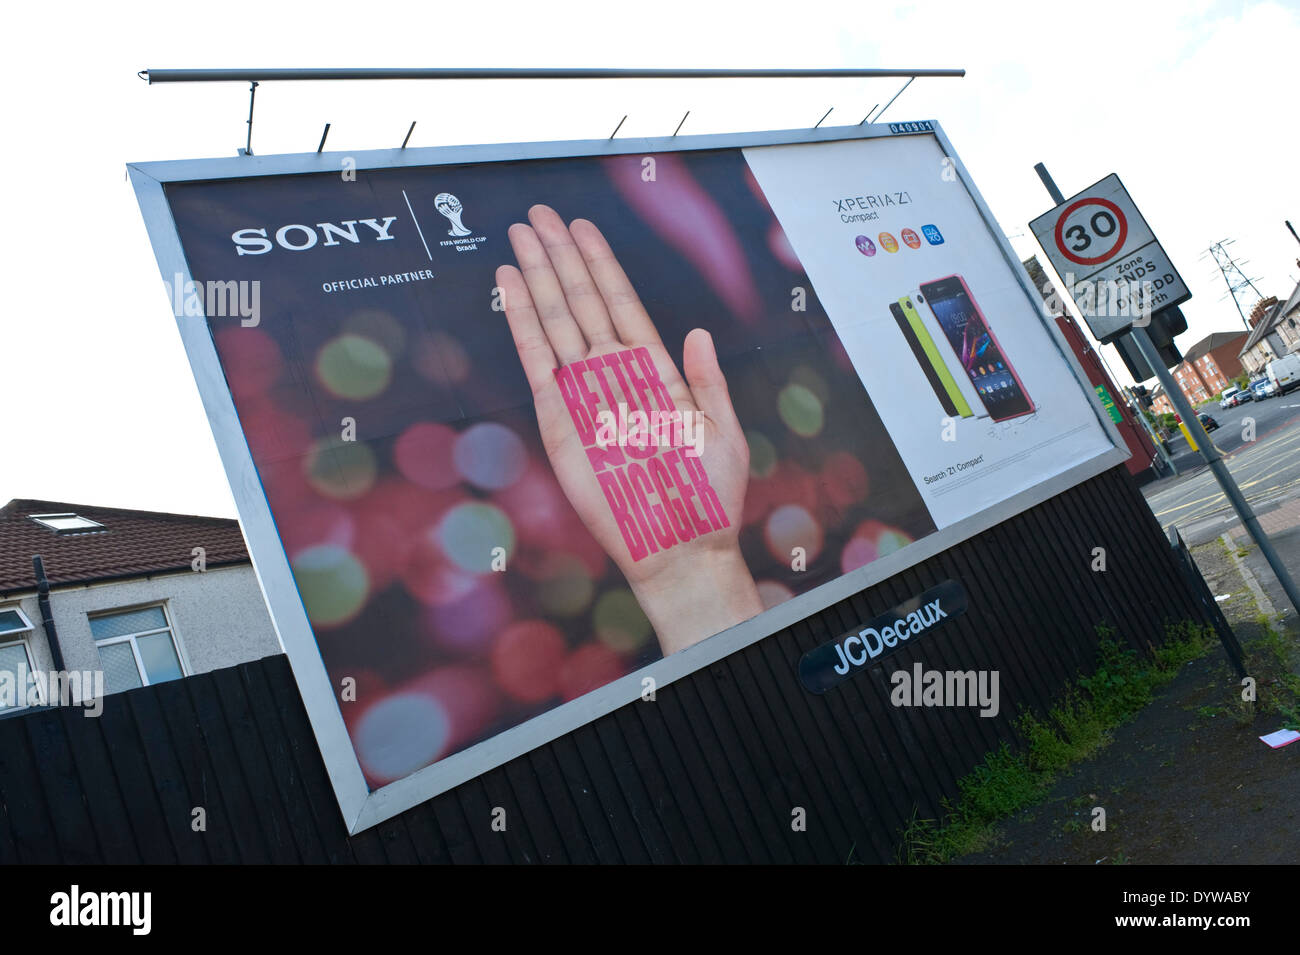 Sony Xperia Z1 smart phone advertising billboards on JCDecaux roadside site in Newport South Wales UK - Stock Image